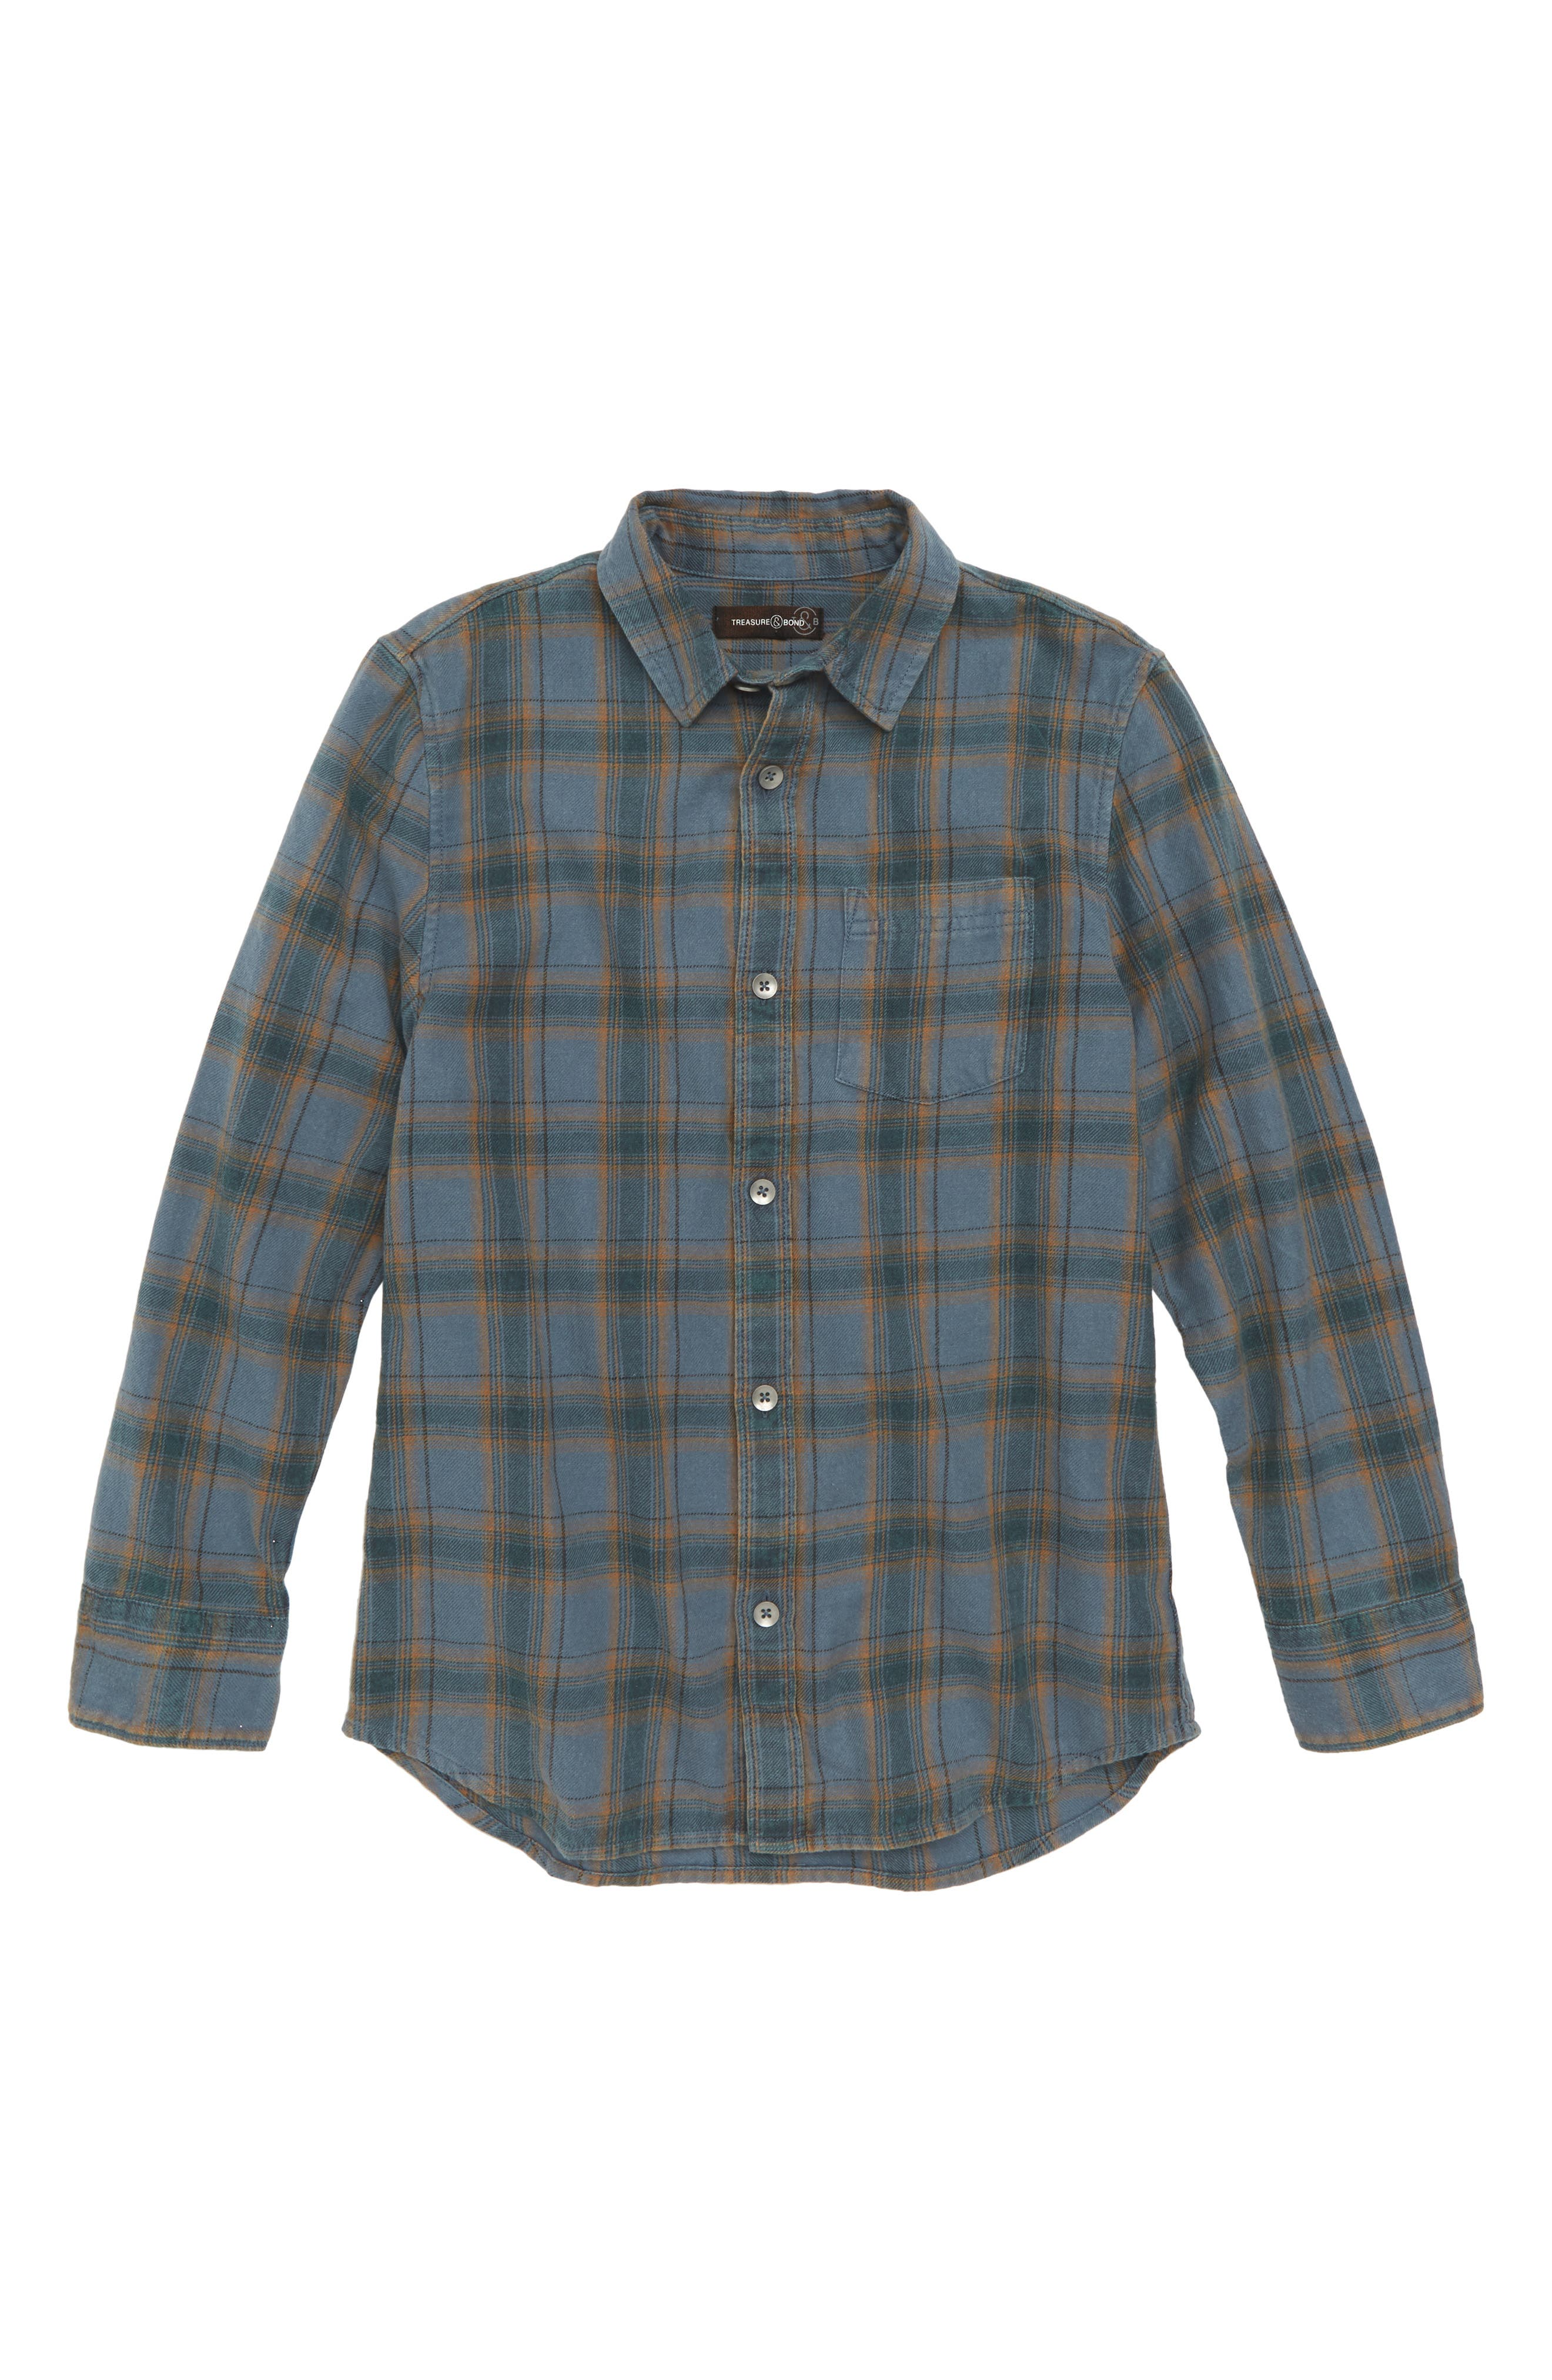 Washed Out Flannel Shirt,                             Main thumbnail 1, color,                             BLUE CHINOISE/ BROWN PLAID